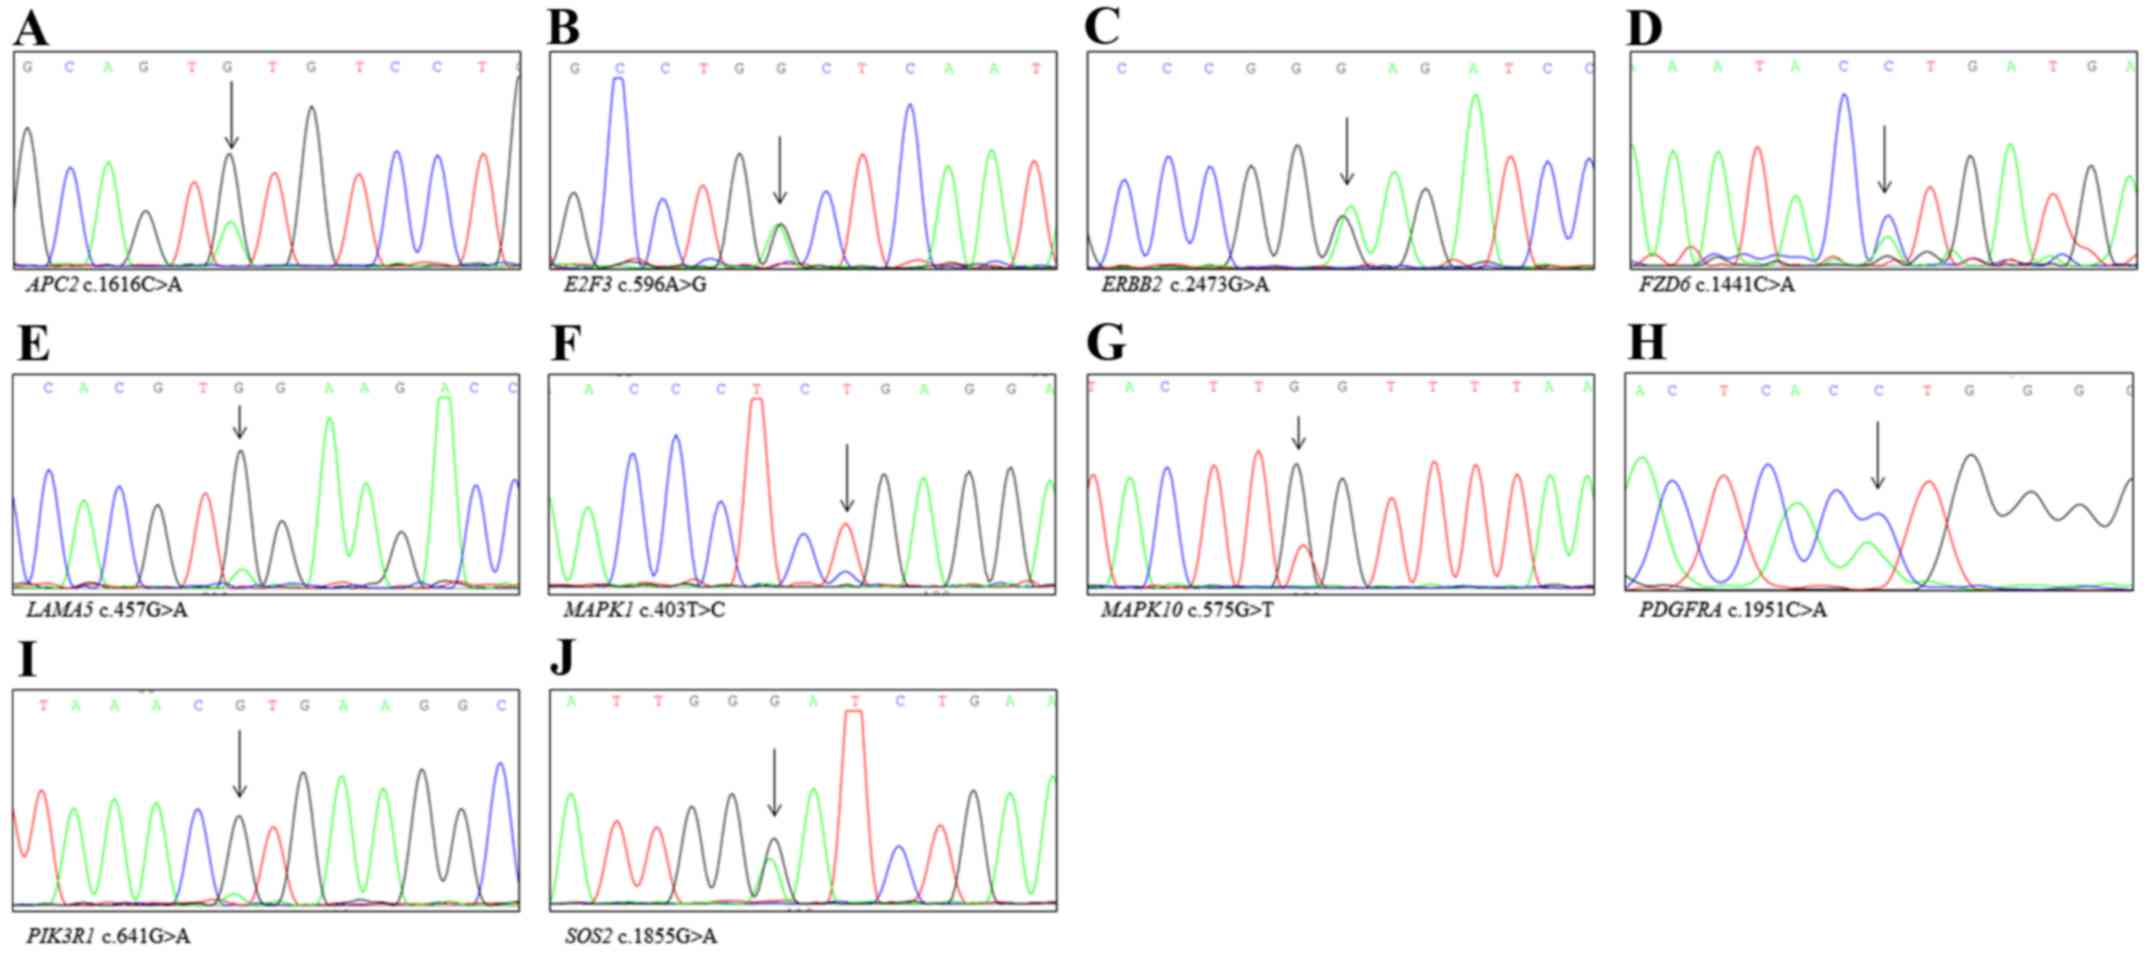 Identification Of Novel Mutations In Endometrial Cancer Patients By One Nine Sequencer Confirmatory Analysis Sanger Sequencing Kegg Pathway Hsa05200 Detected Via Wes A Apc2 B E2f3 C Erbb2 D Fzd6 E Lama5